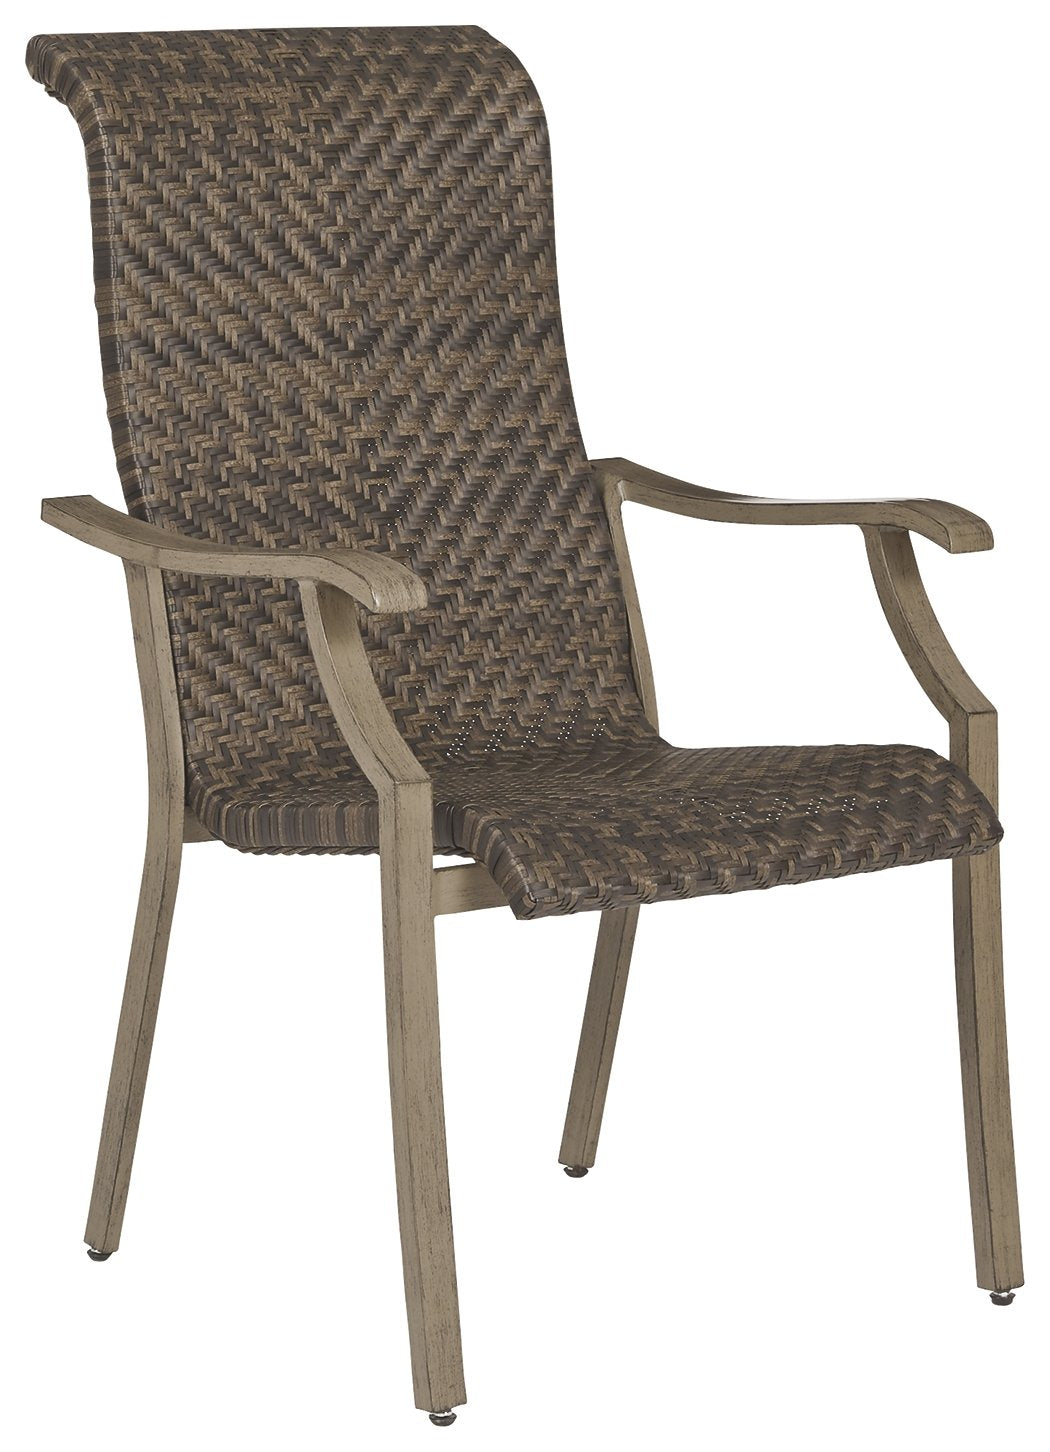 Windon Barn Signature Design by Ashley Outdoor Dining Chair Set of 4